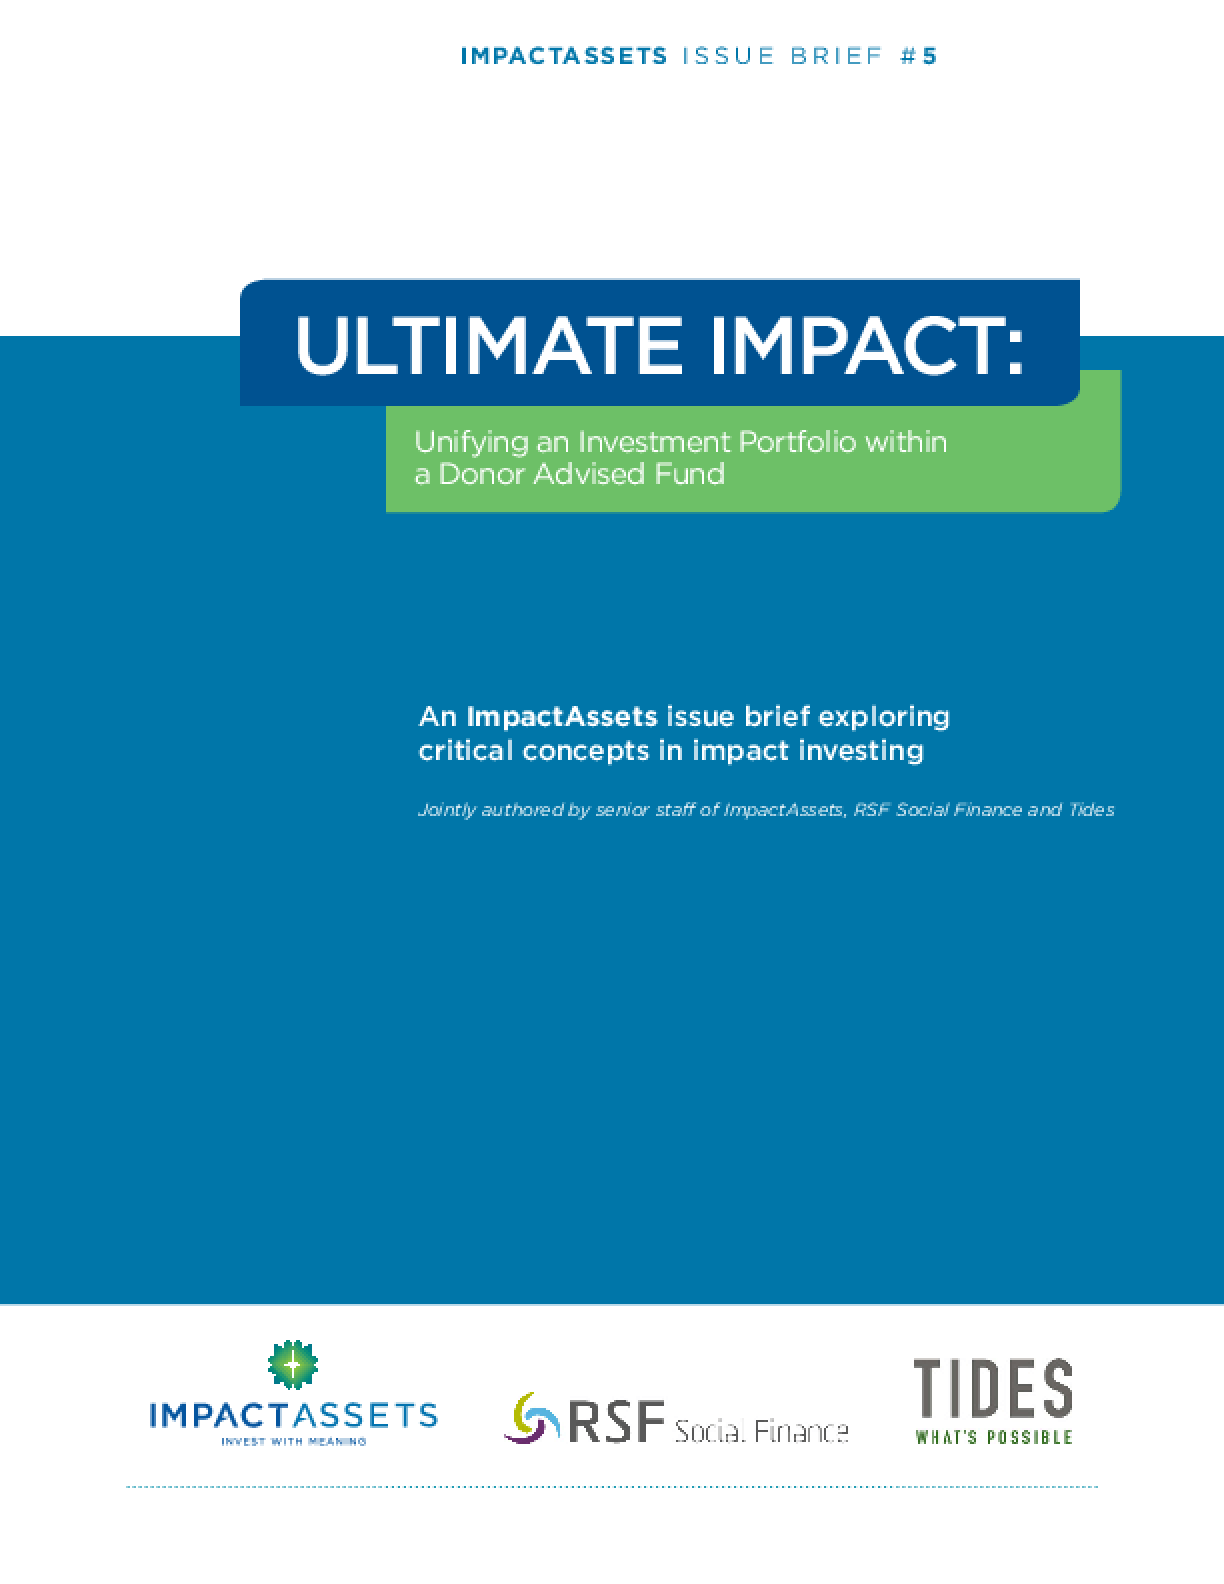 Ultimate Impact: Unifying an Investment Portfolio within a Donor Advised Fund